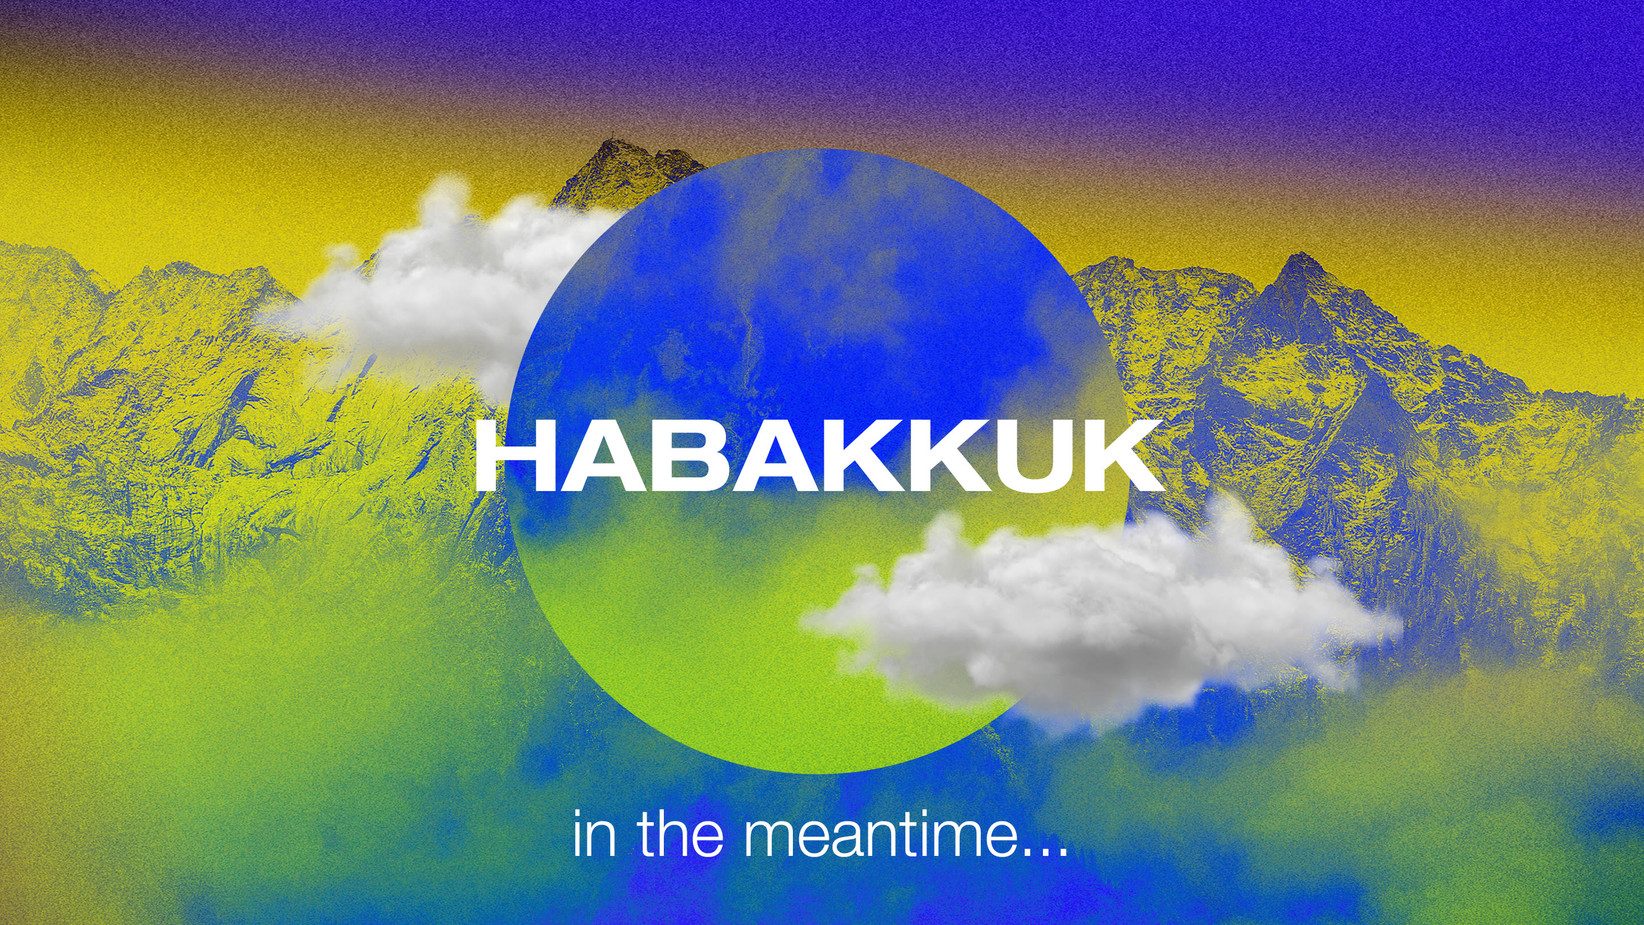 Habakkuk Week 4